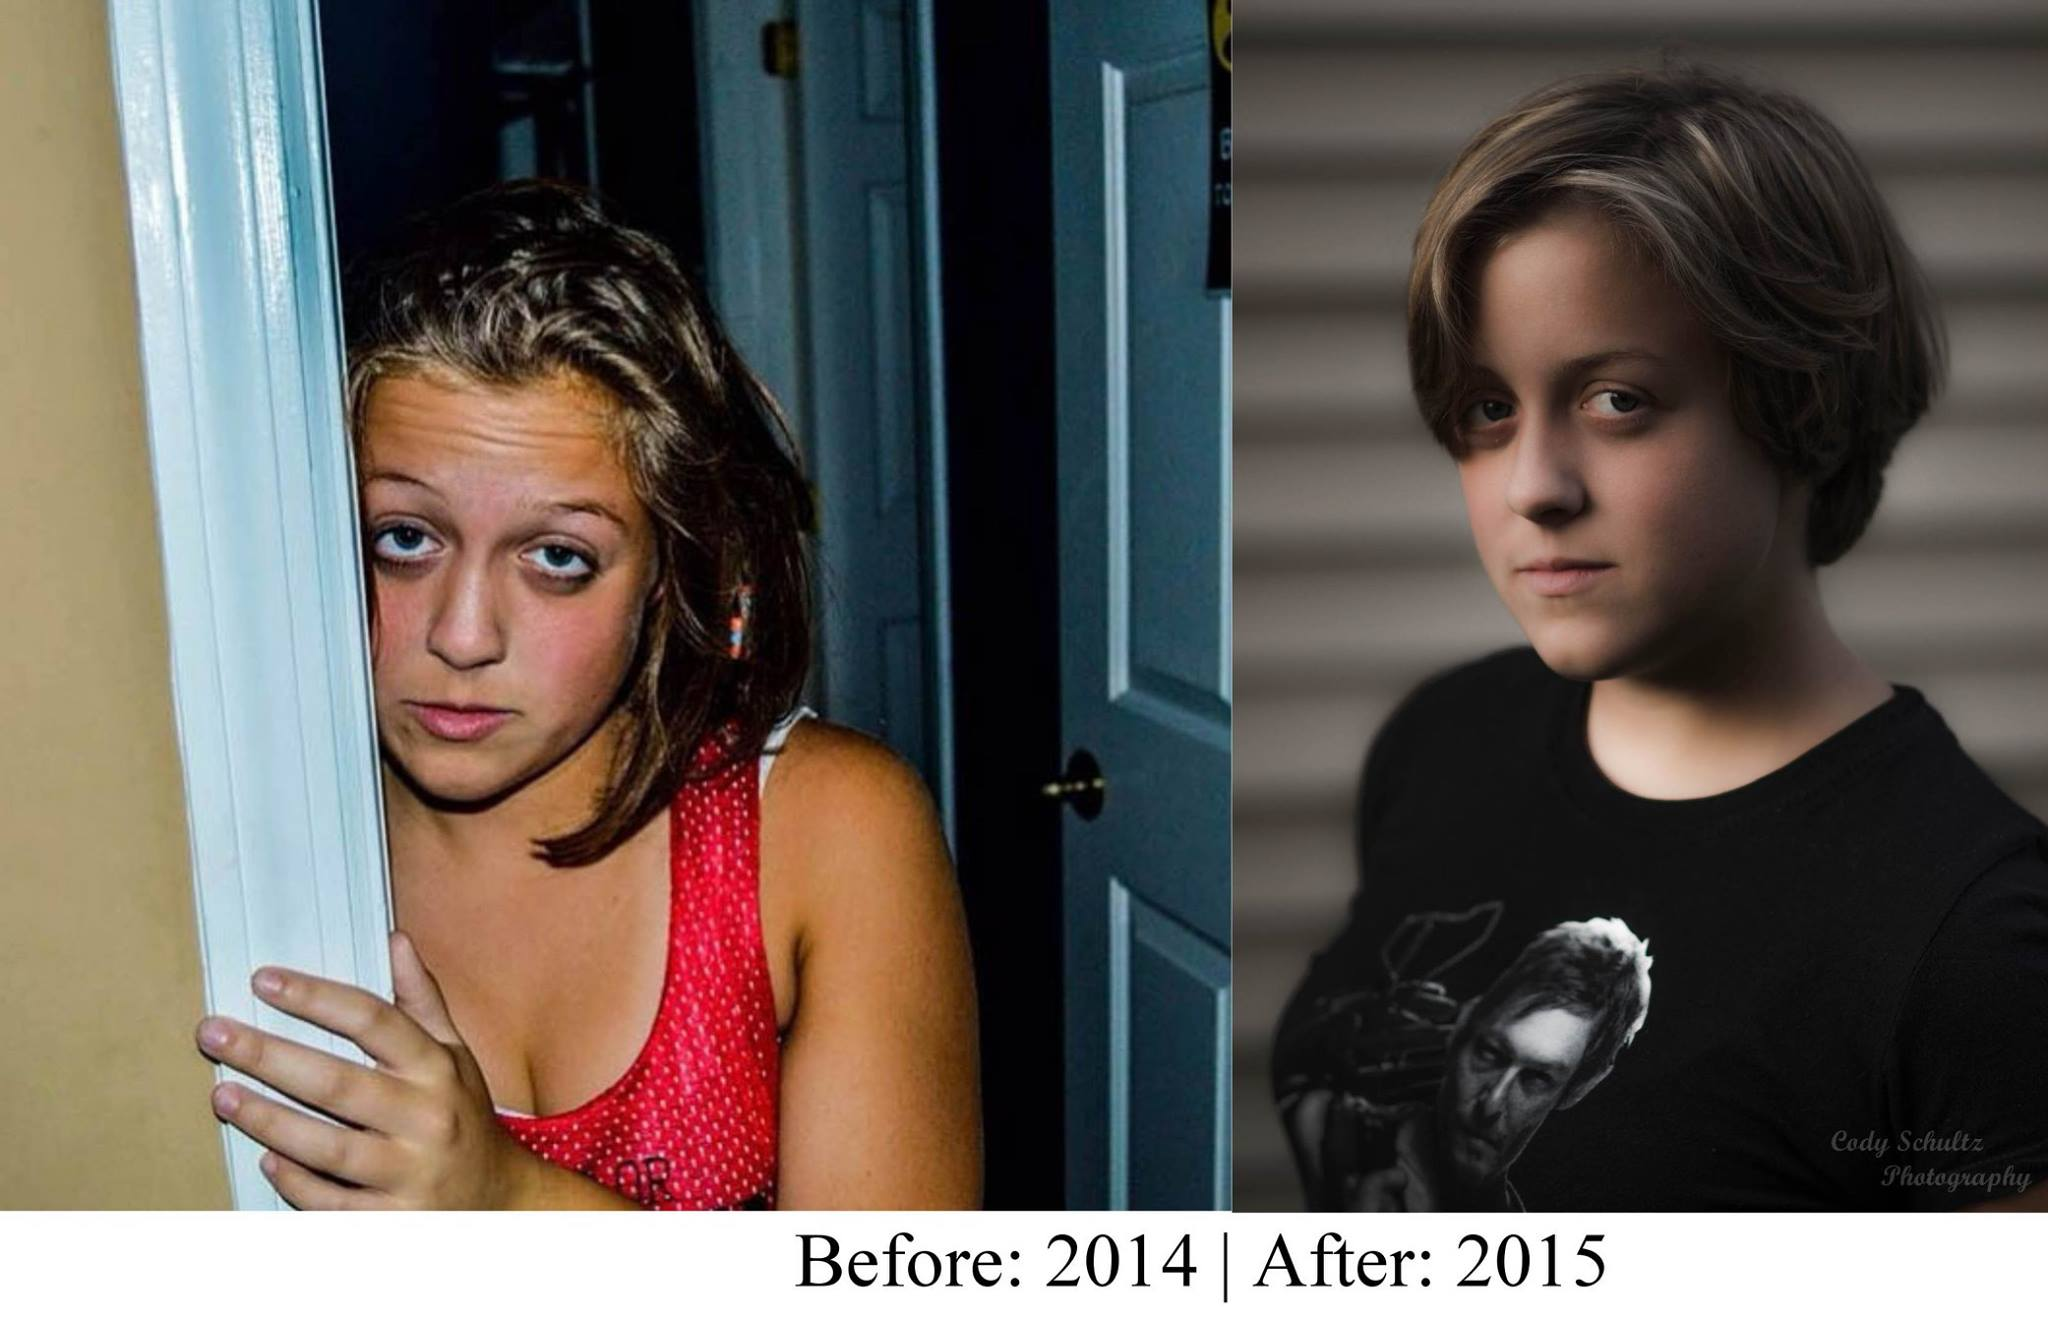 A side-by-side comparison of two portraits I had taken of my girlfriend to see my improvement with portrait photography.